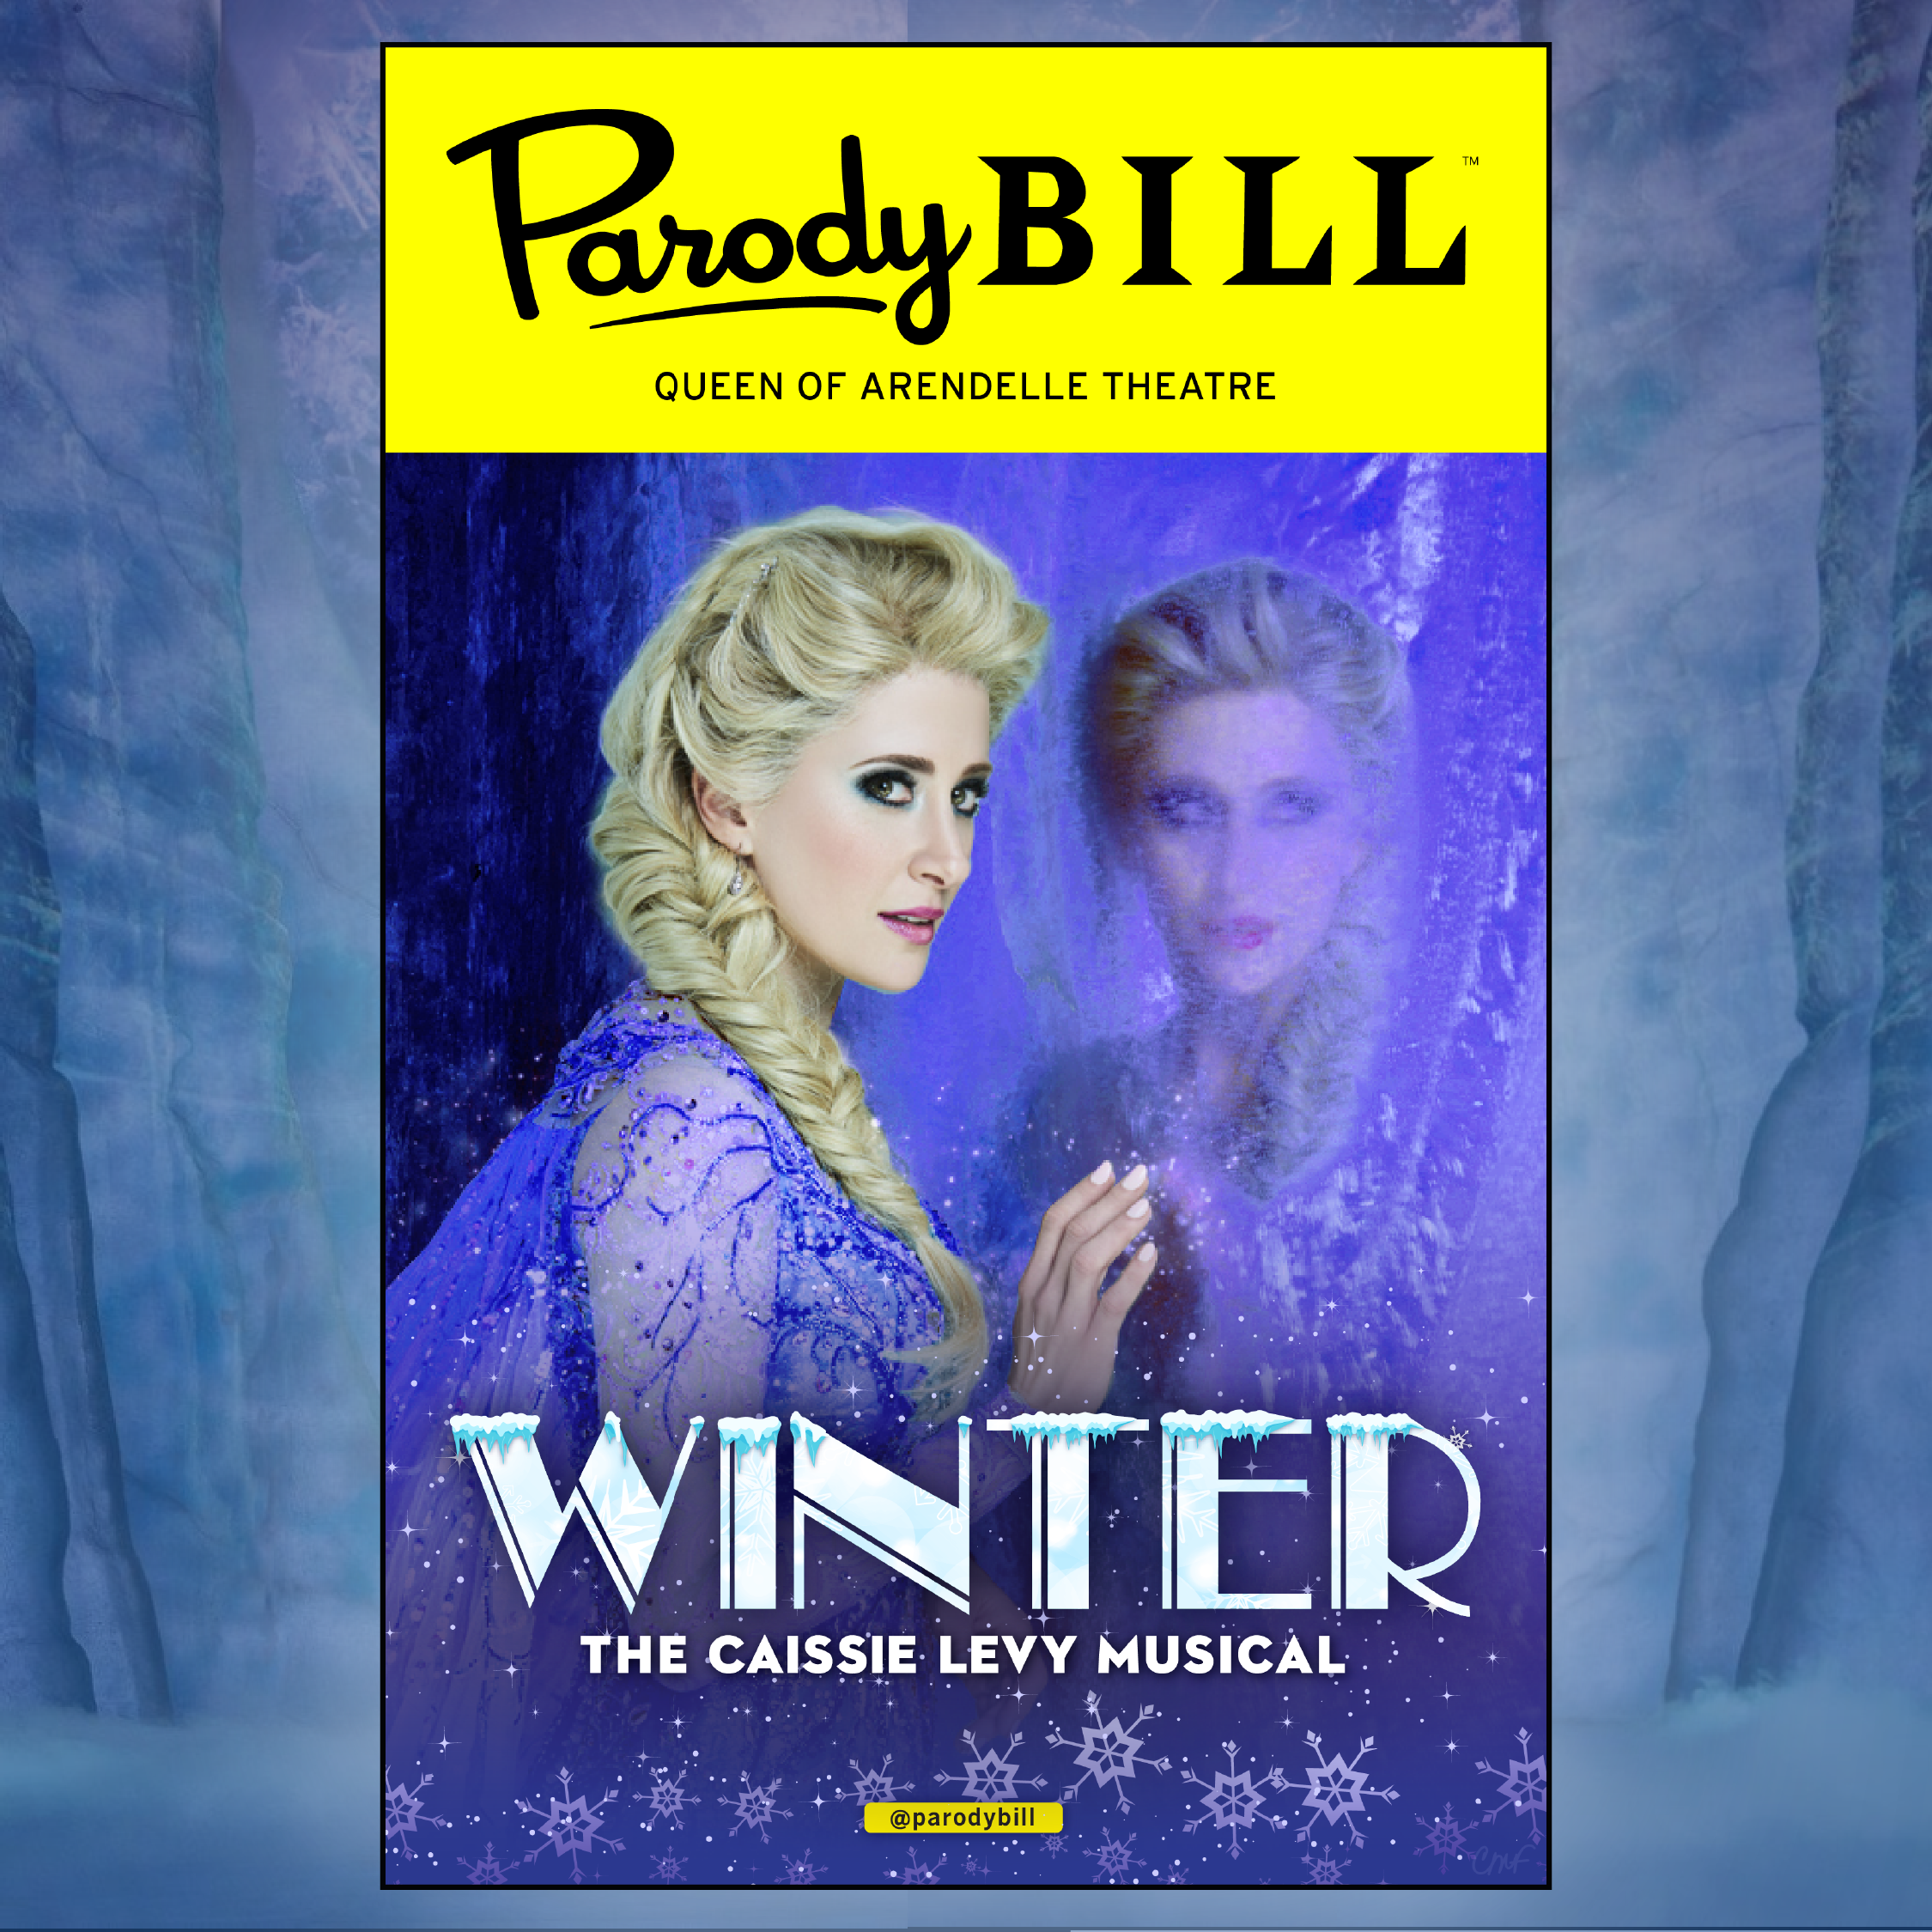 WINTER: THE CAISSIE LEVY MUSICAL